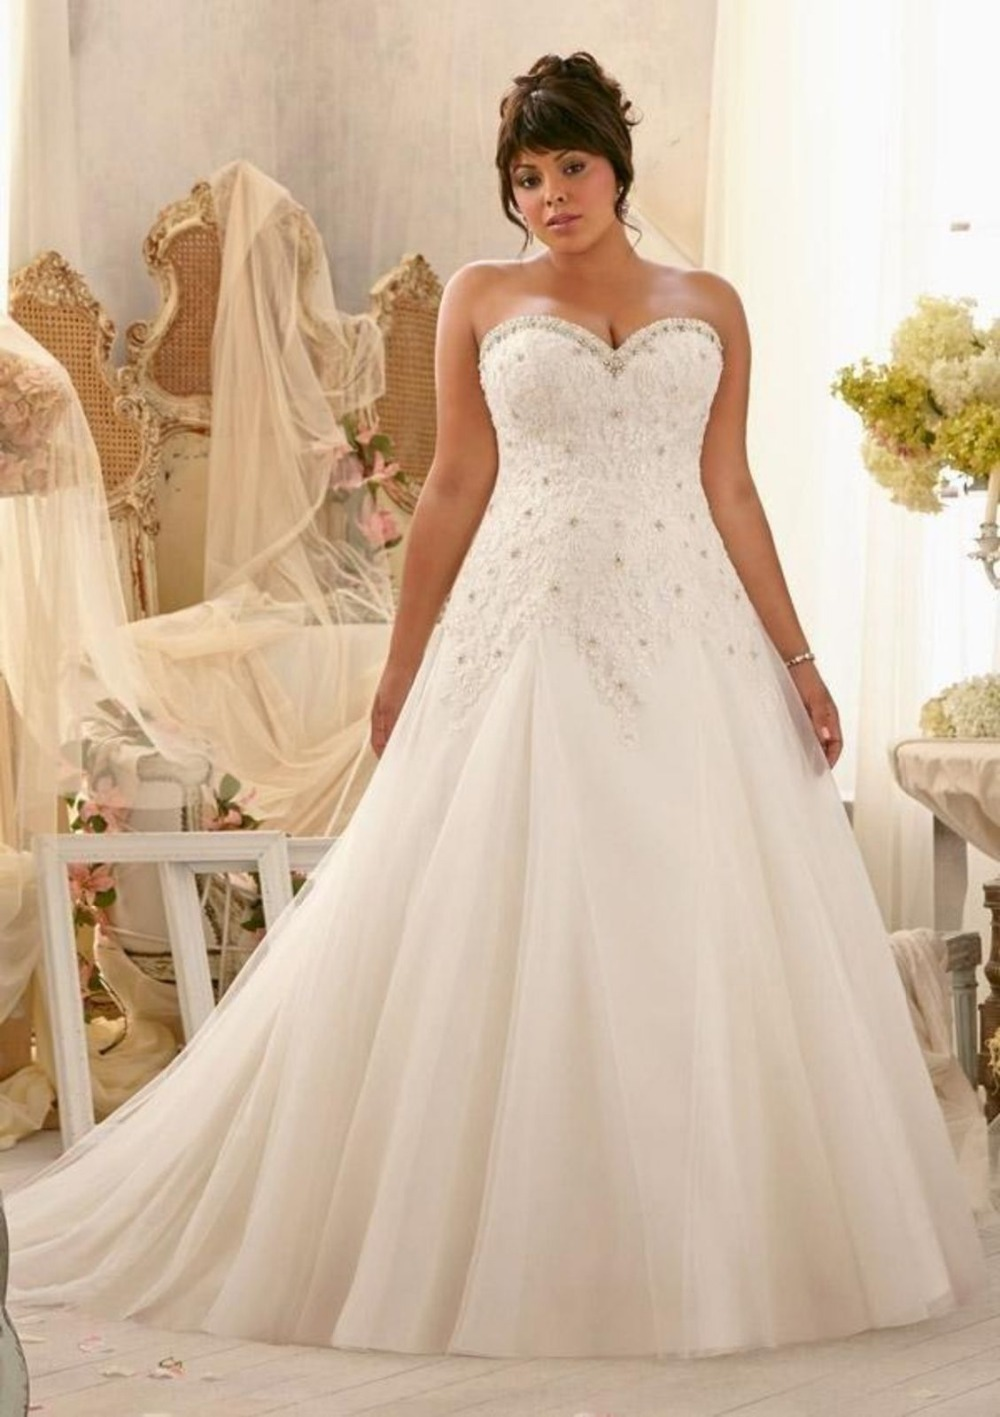 In Stock Applique Lace And Tulle Bandage Plus Beading Bridal Gown Vestido De Noiva Ready To Ship Mother Of The Bride Dresses